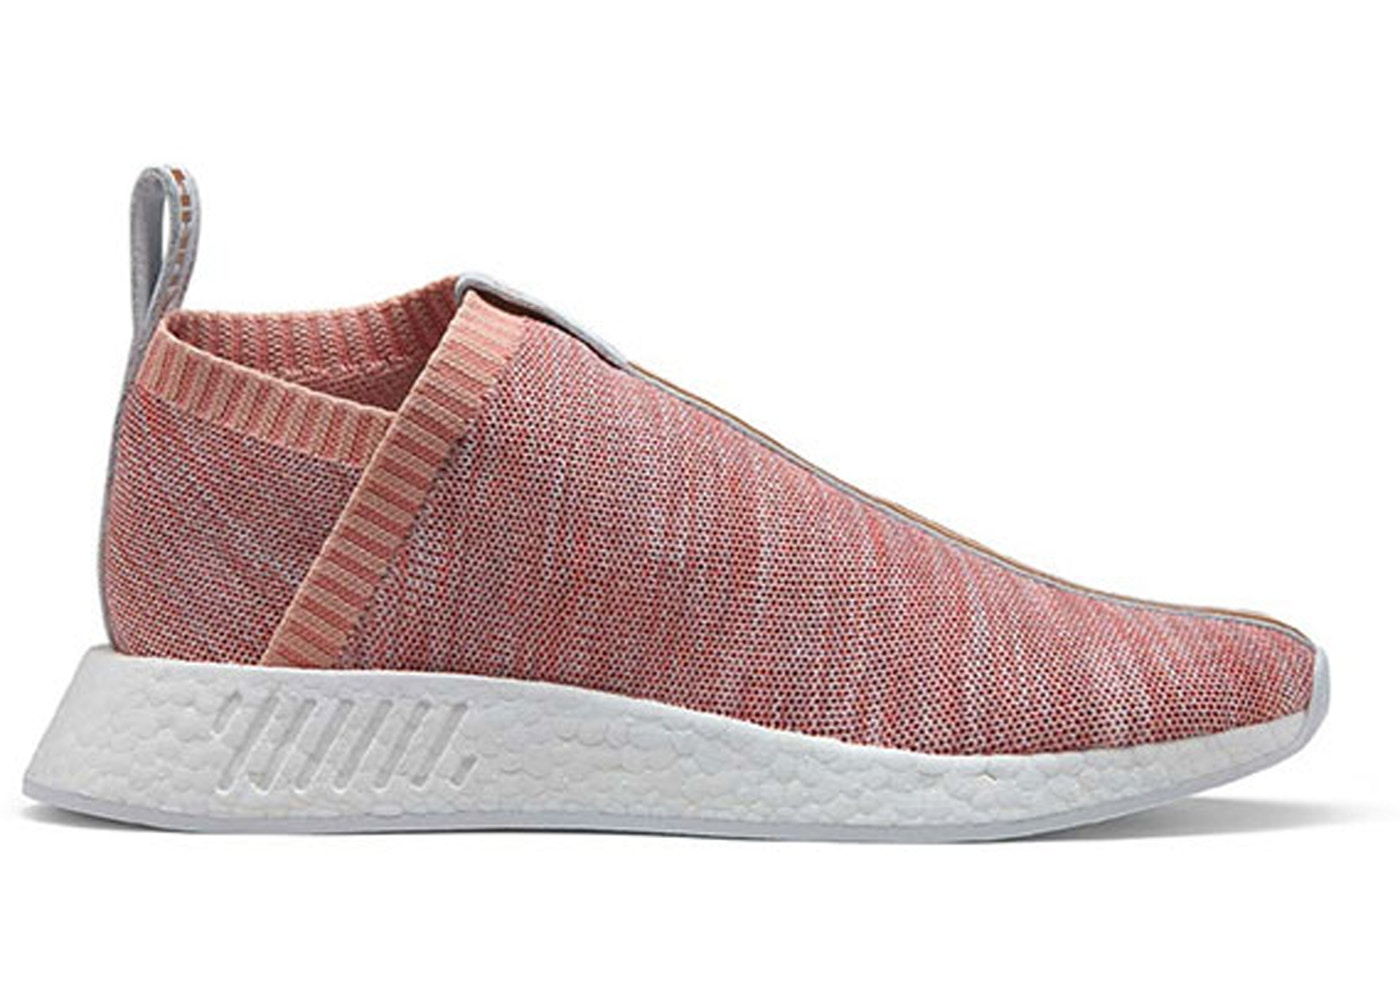 online store d1d6a 4c6a3 adidas NMD CS2 Kith X Naked Pink